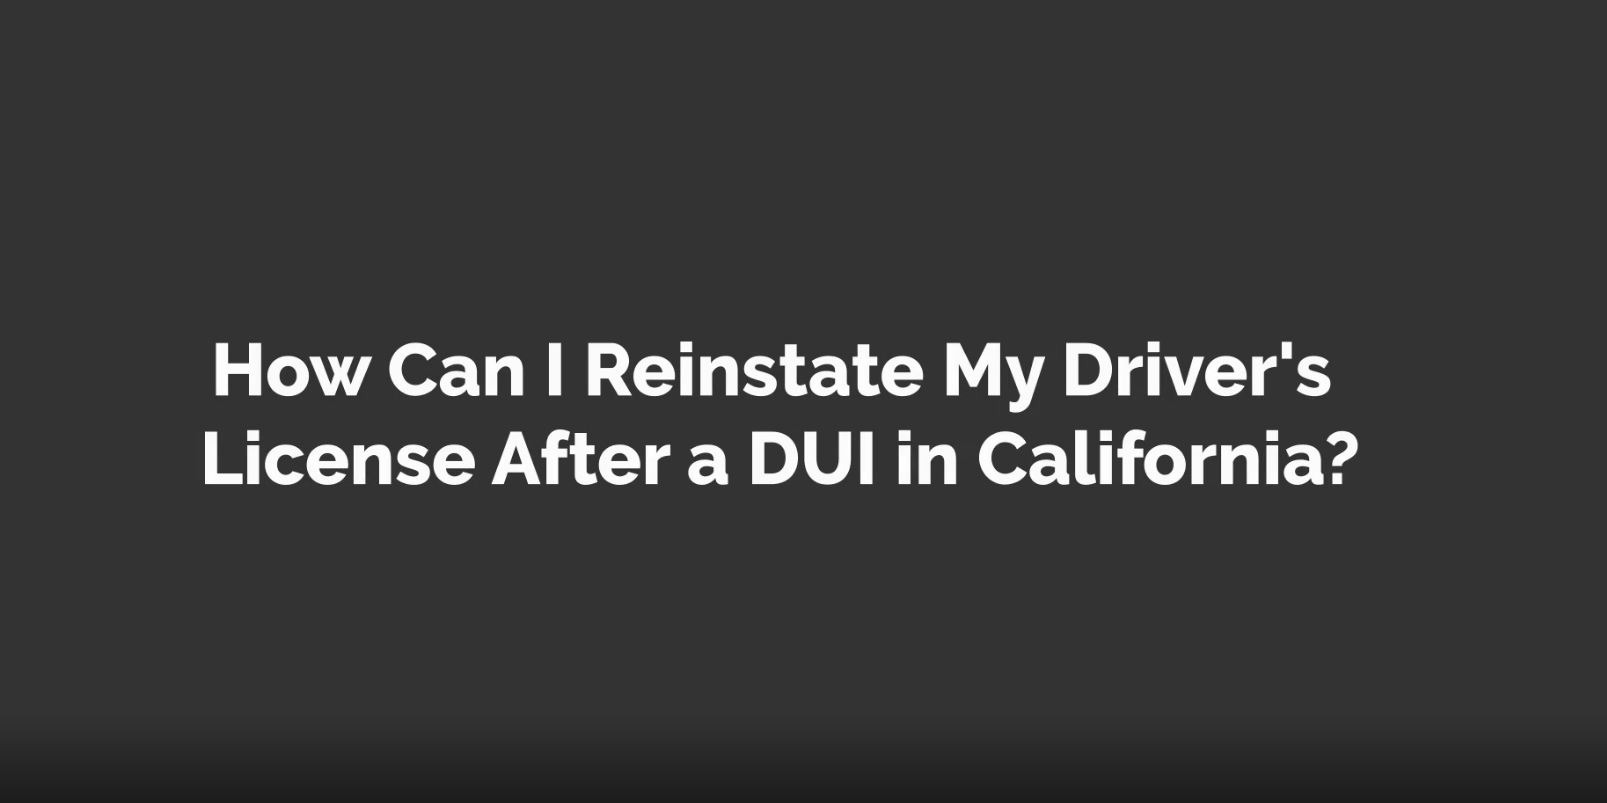 How can I reinstate my driver's license after a DUI in